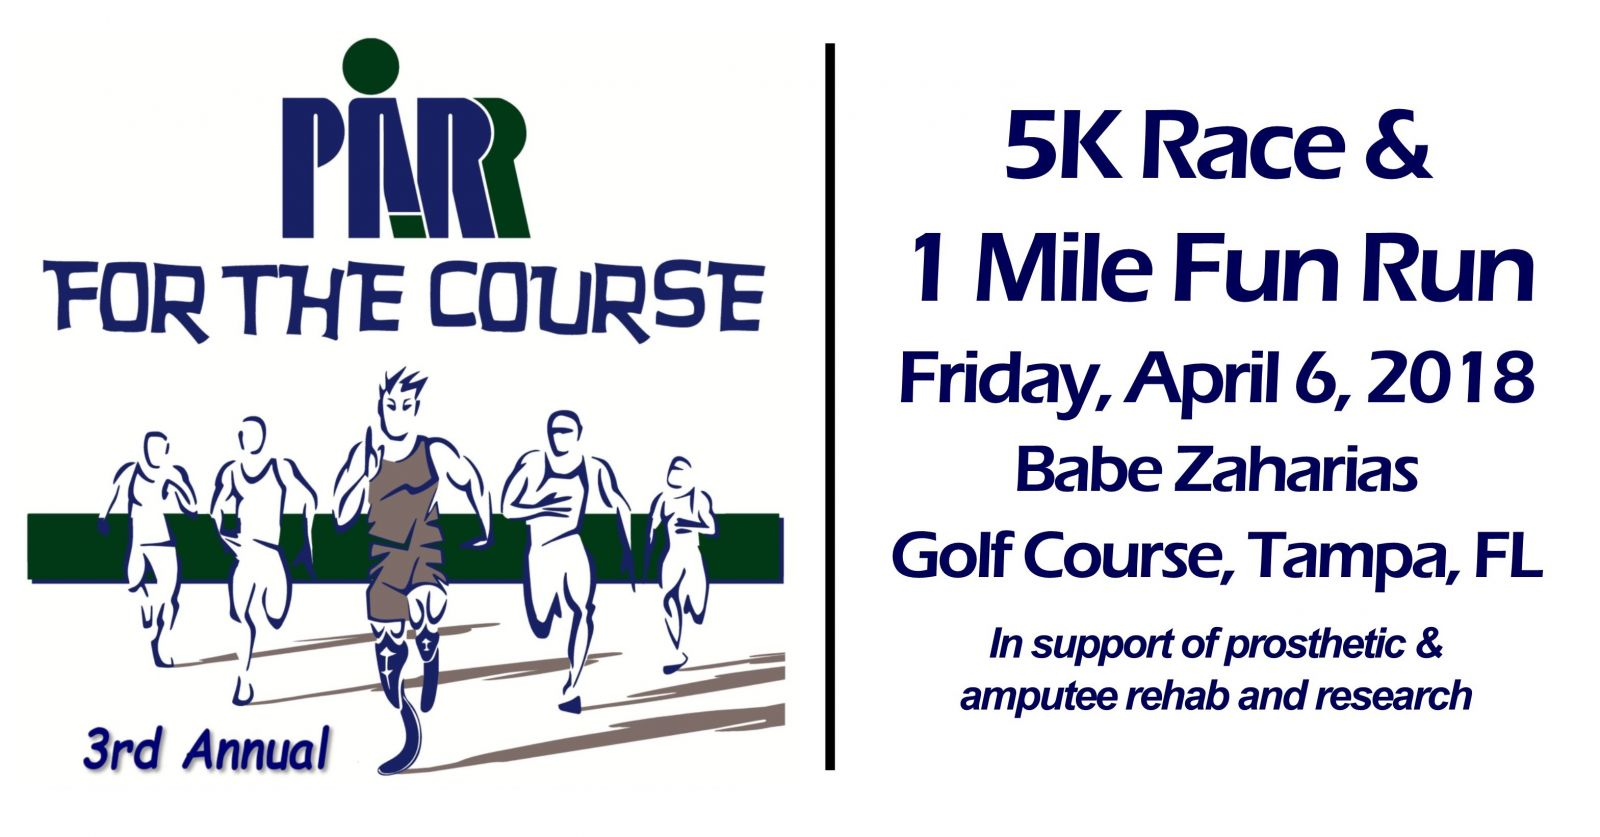 3rd Annual PARR for the Course 5K/1Mile Run